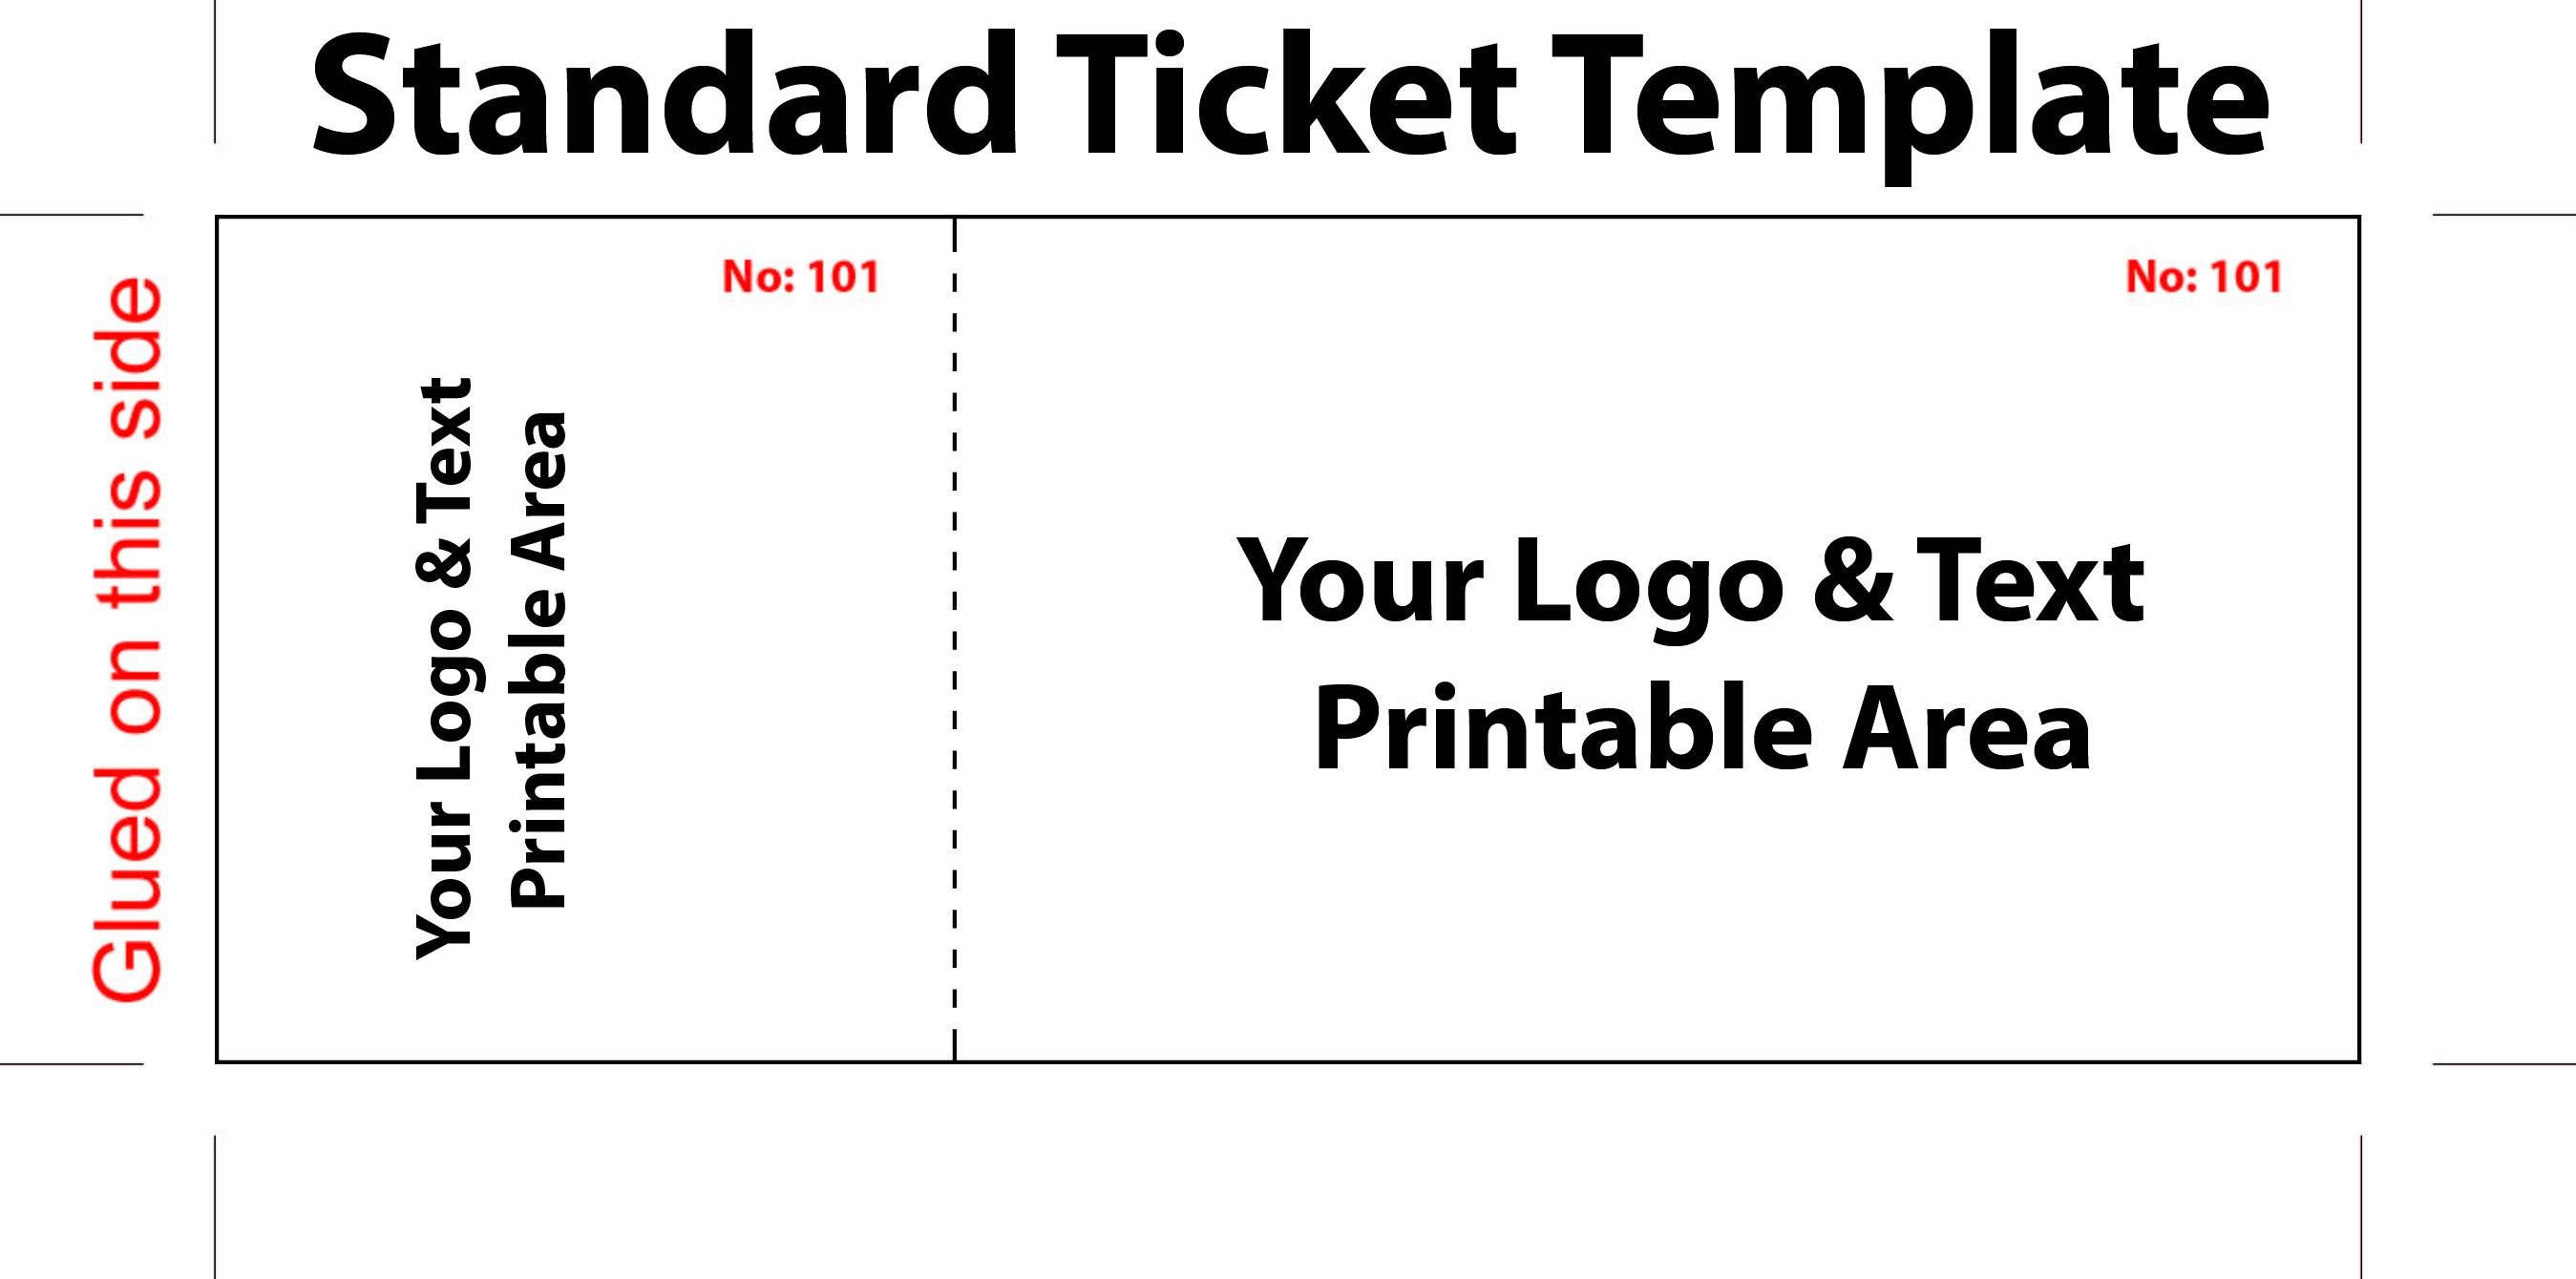 Concert Ticket Template Word Free Editable Standard Ticket Template Example for Concert